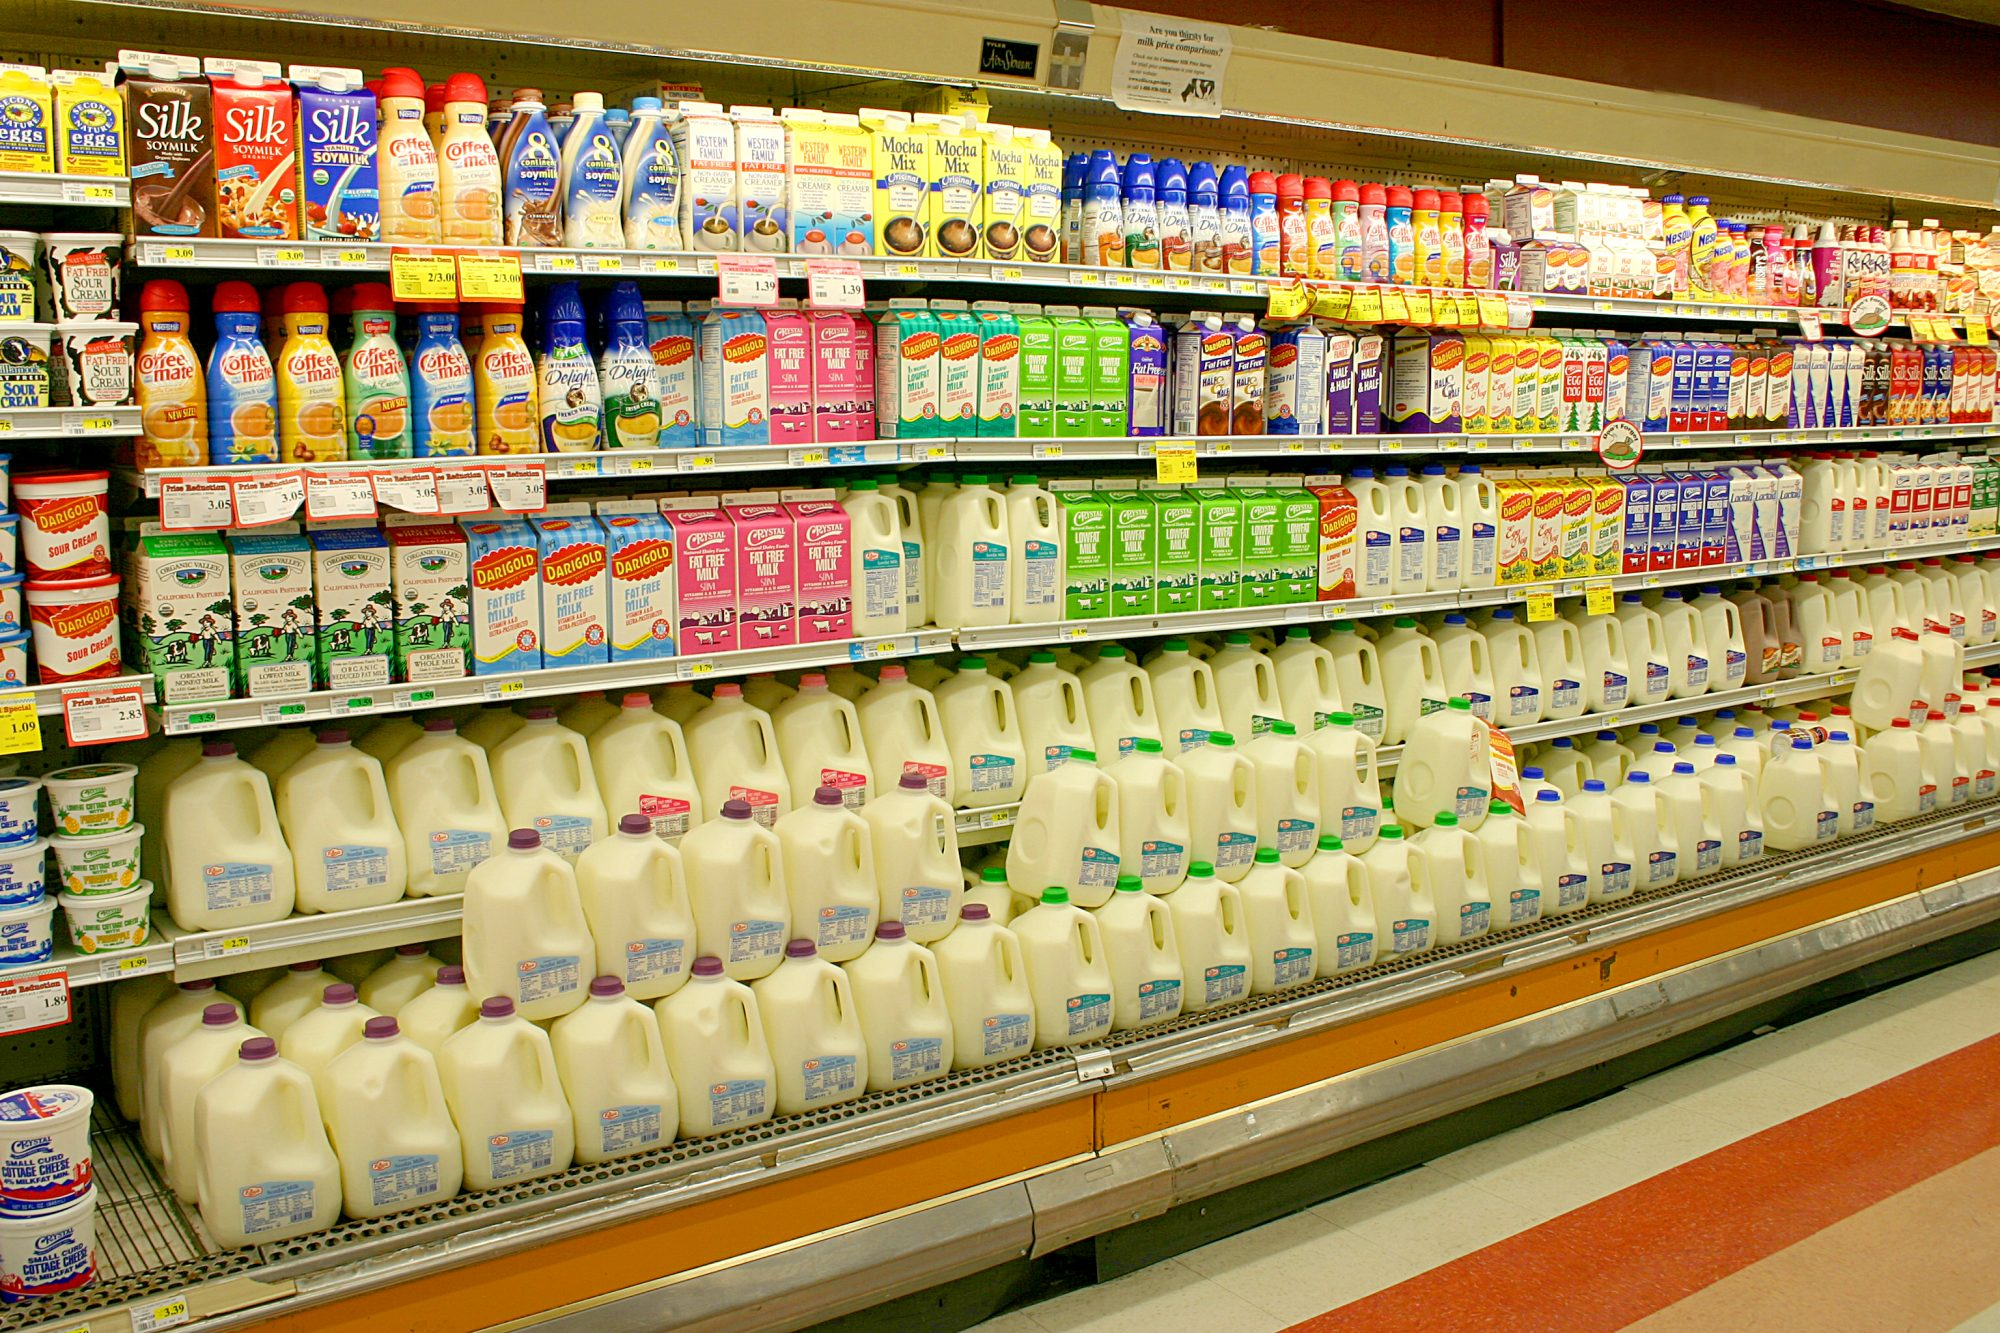 Milk Aisle Getty 3/26/20